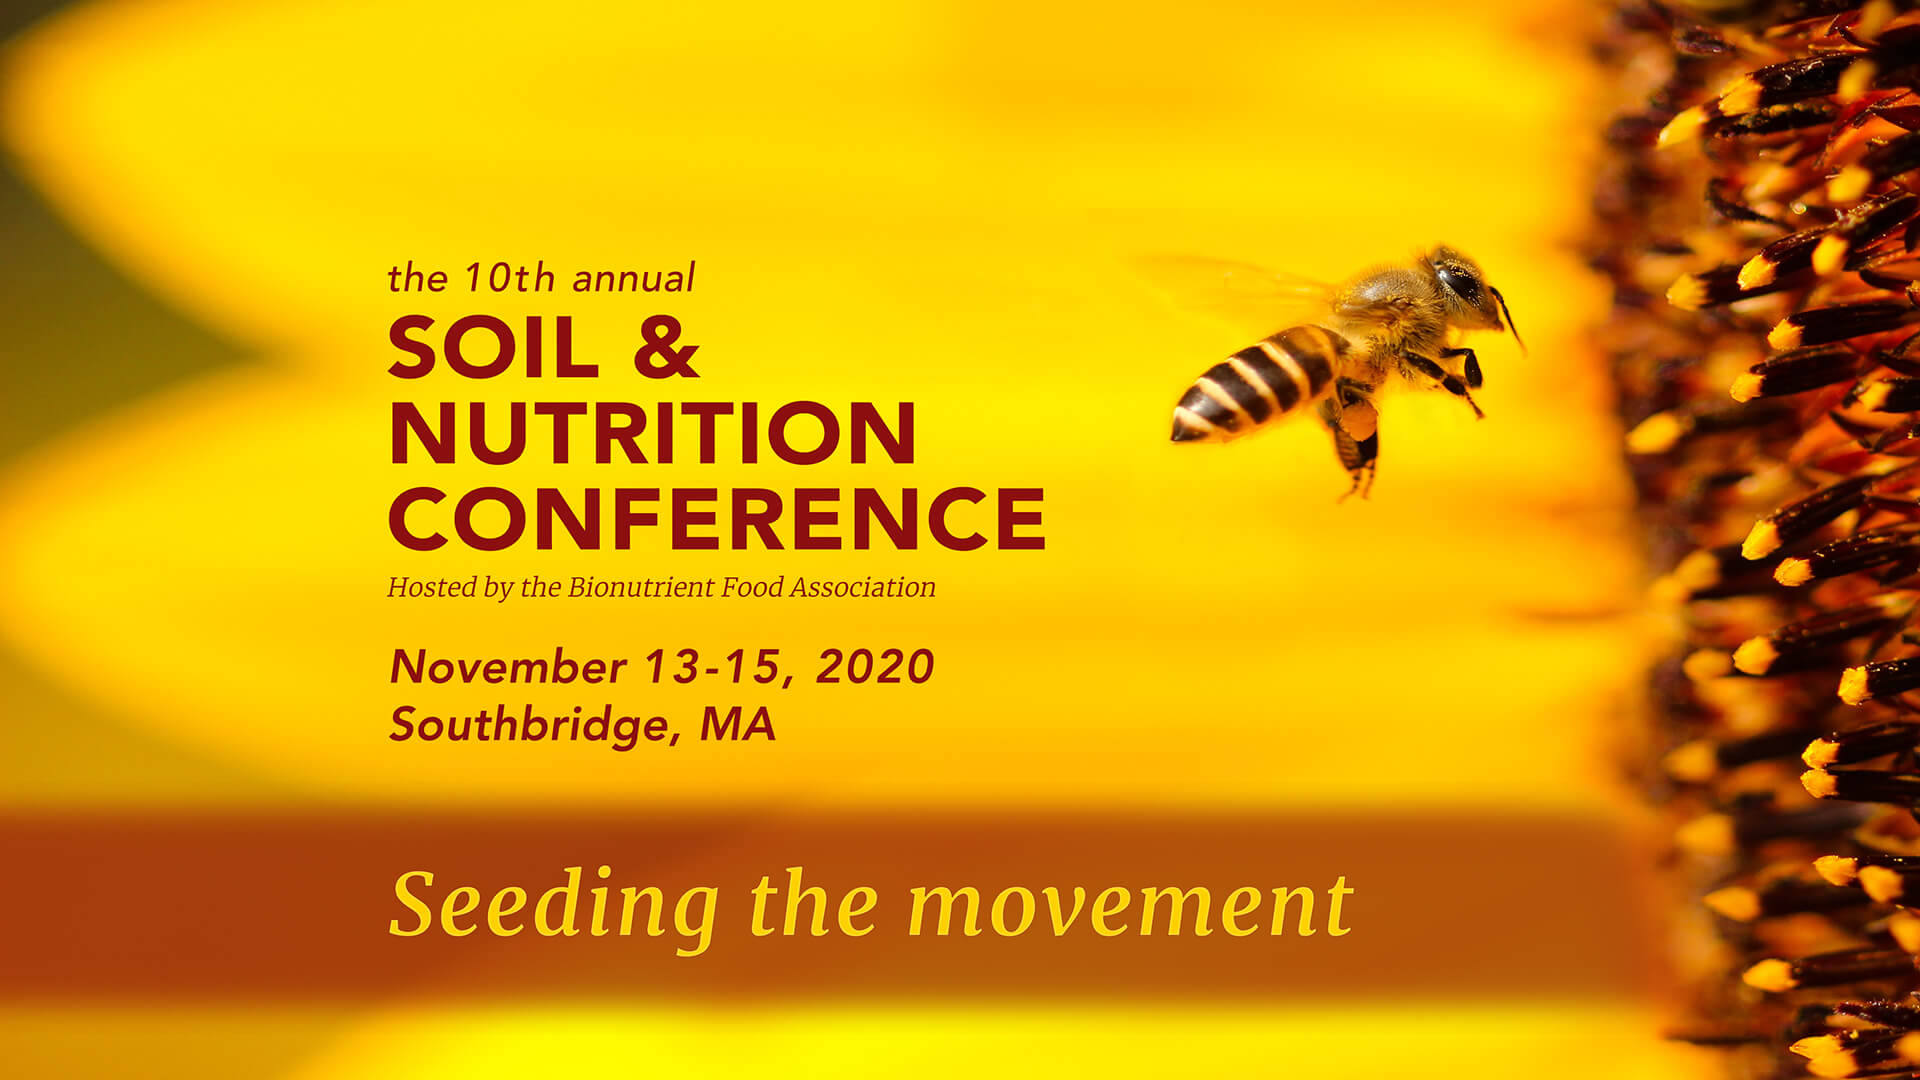 Soil & Nutrition Conference